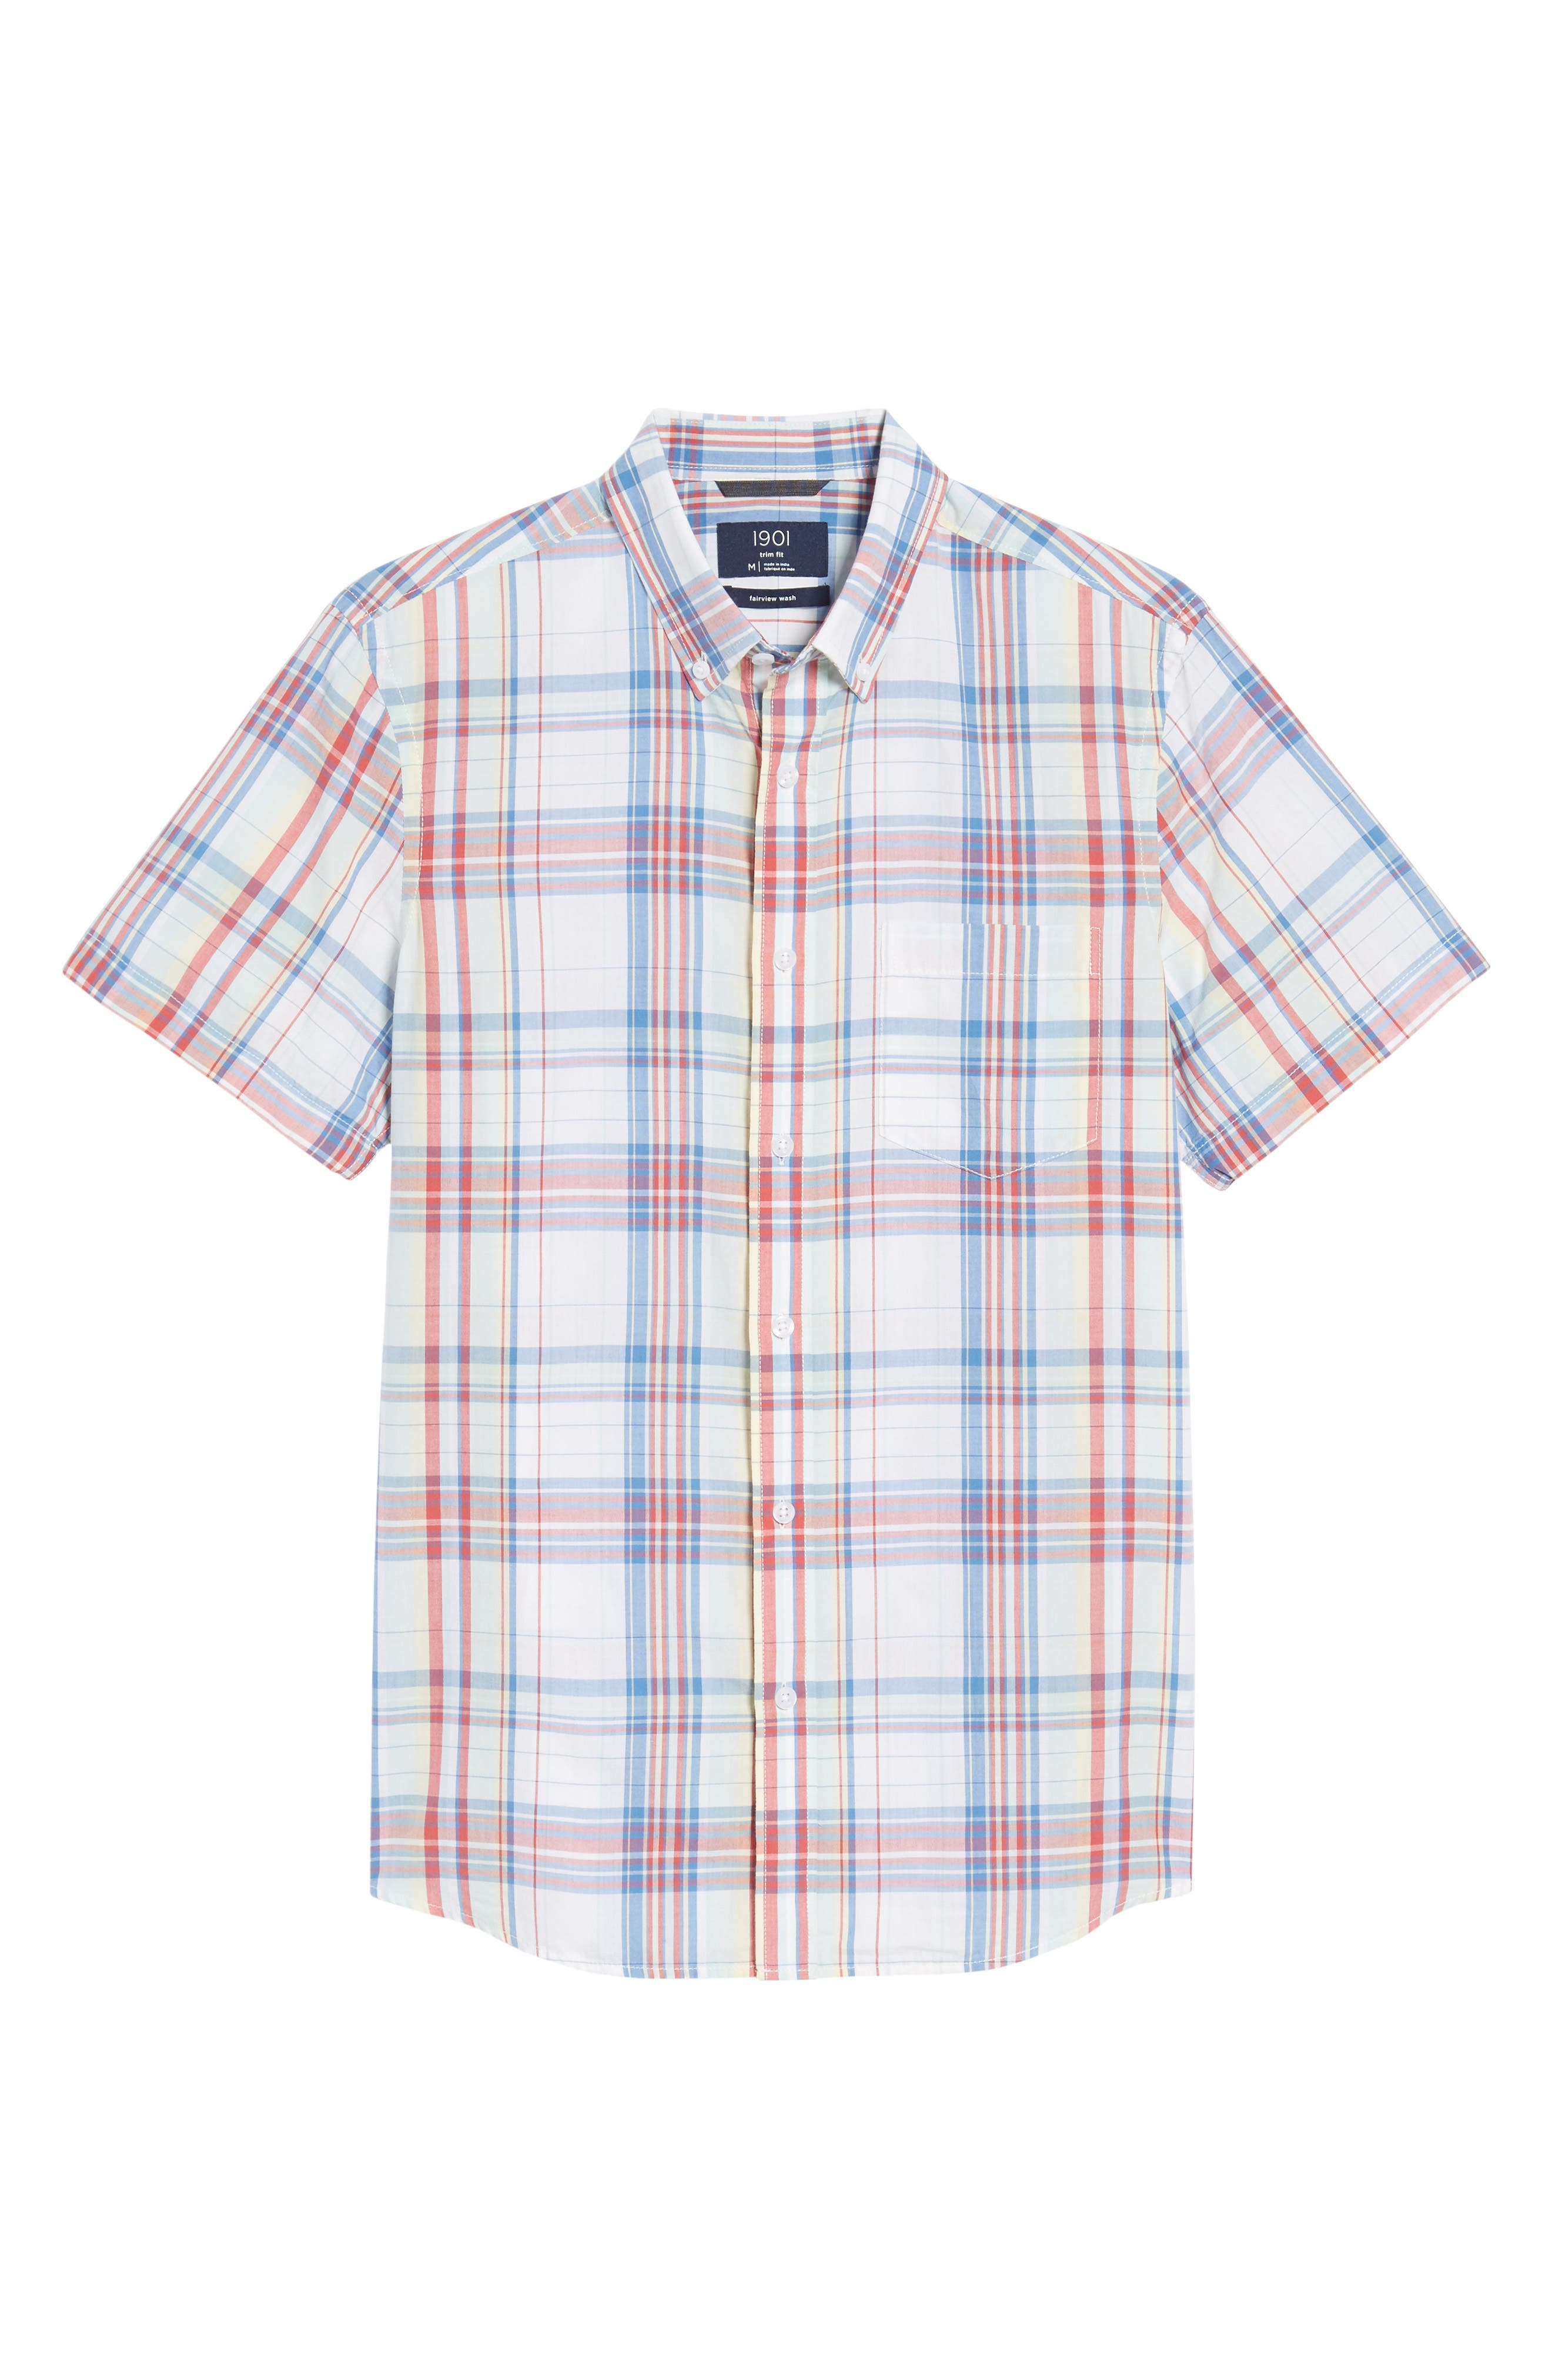 Trim Fit Plaid Short Sleeve Sport Shirt,                             Alternate thumbnail 6, color,